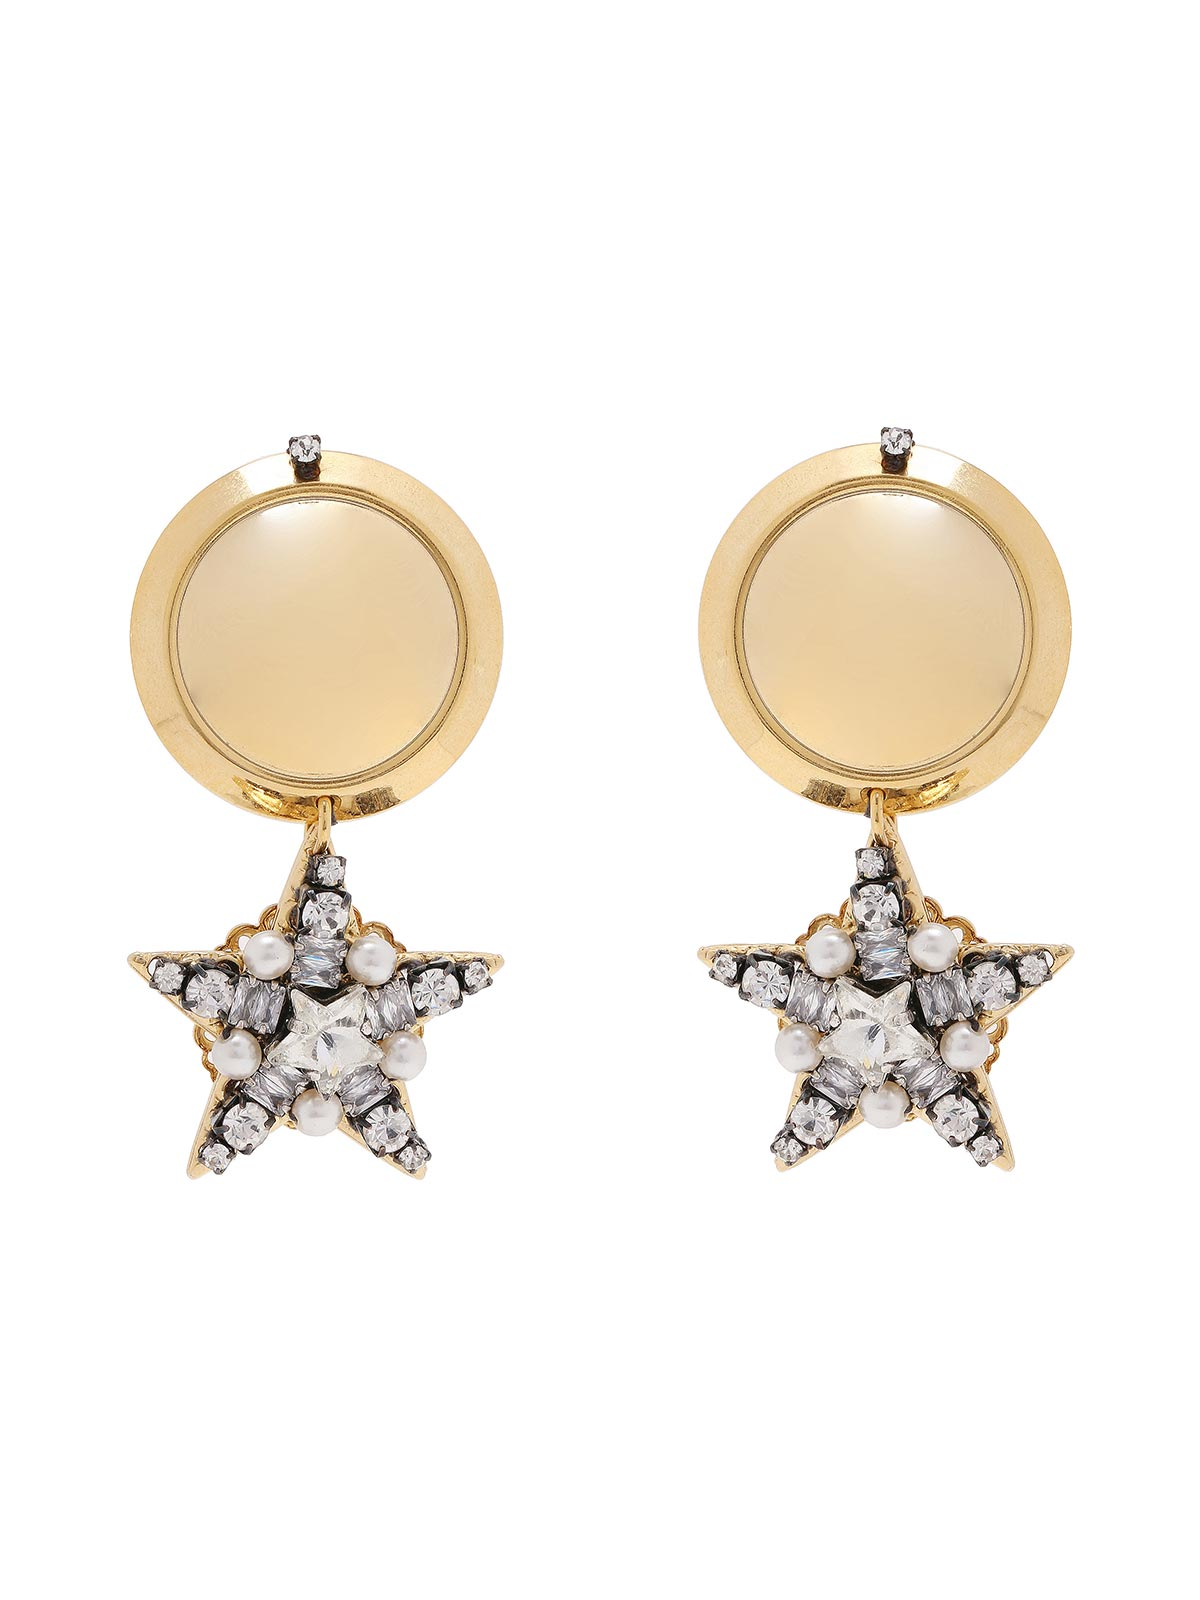 Botton earrings with pendant  star shaped